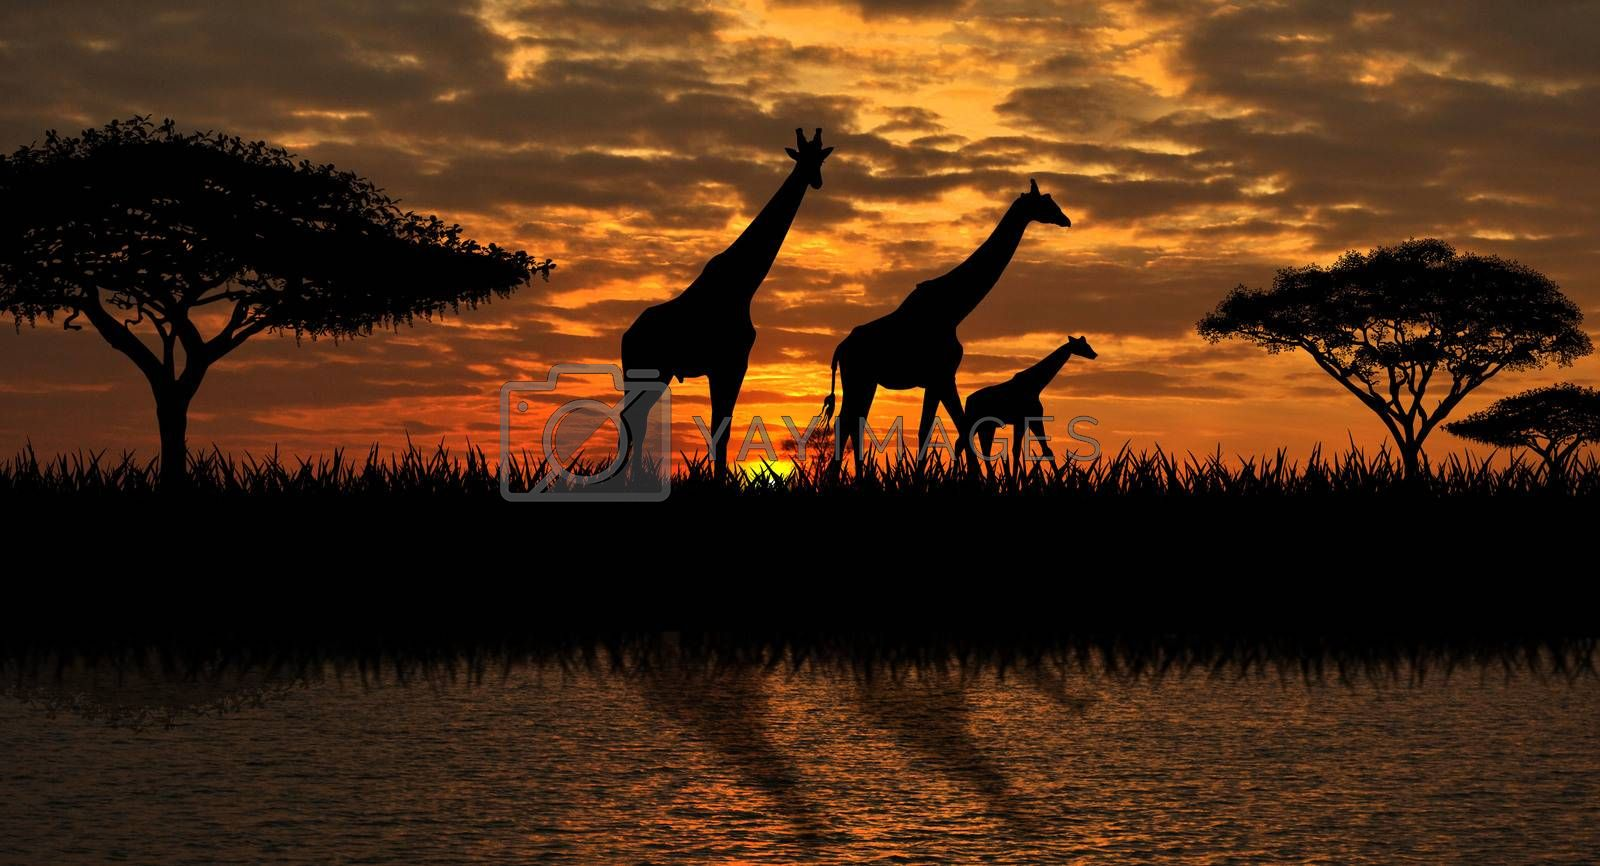 Silhouettes of giraffes  on a sunset background. Giraffes against the backdrop of the sunset and the river.